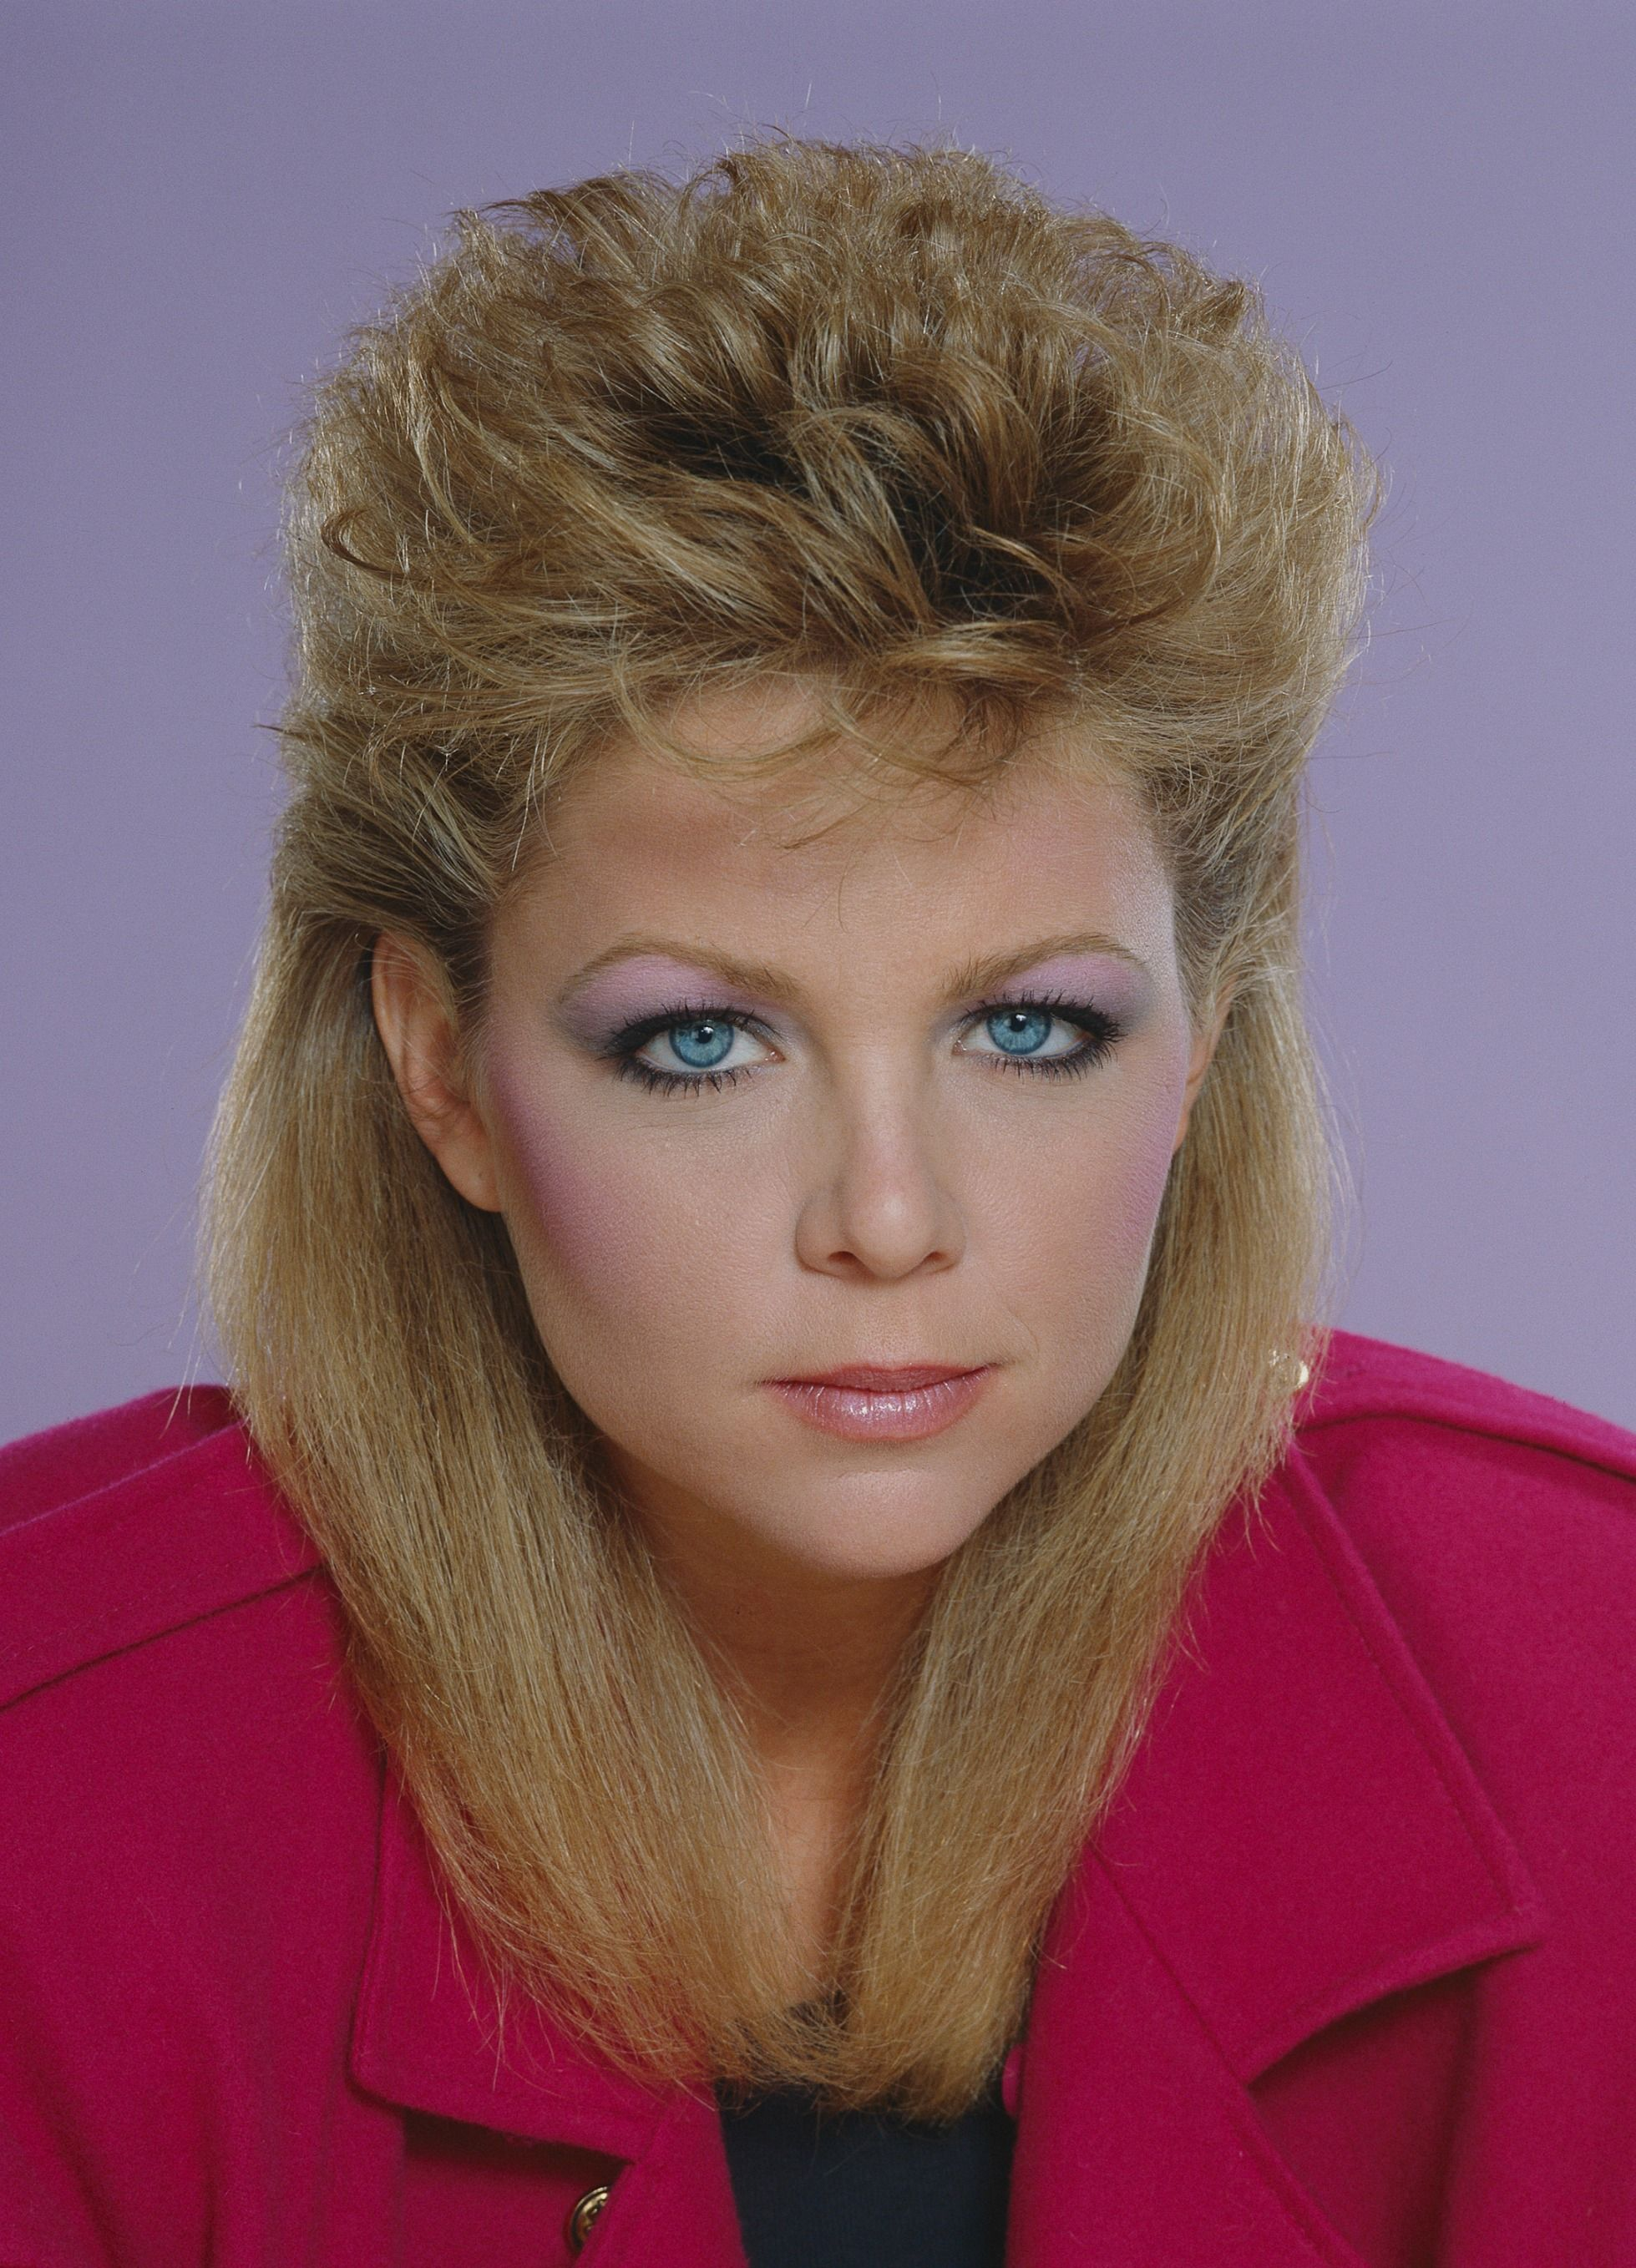 80s style hair the 13 most embarrassing 80s trends and 3002